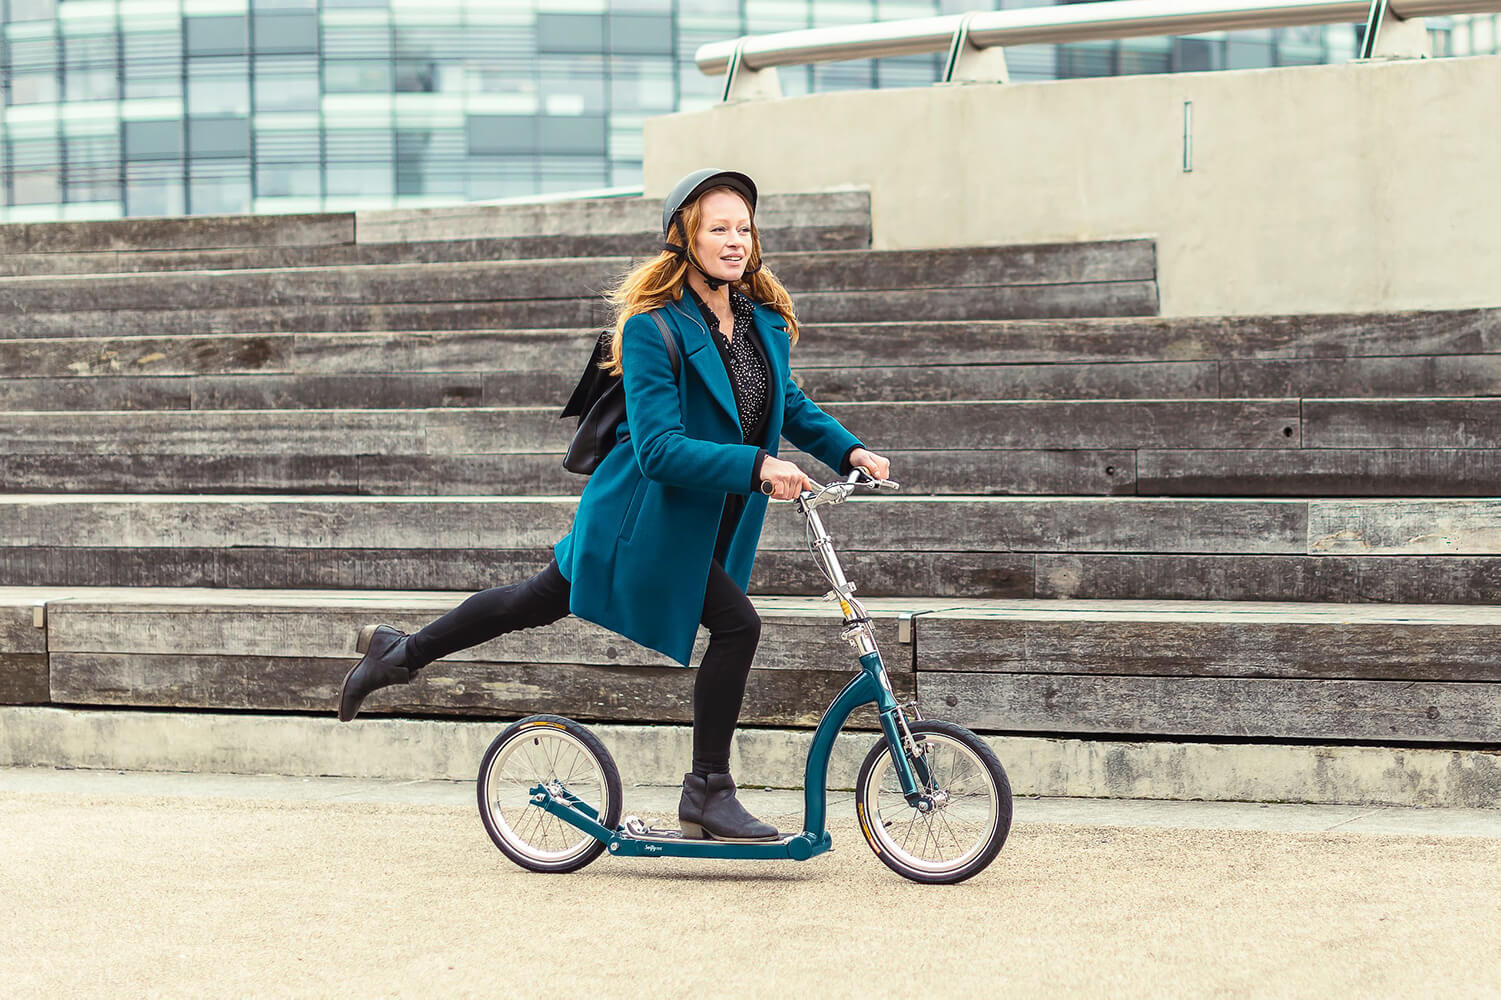 adult commuter scooter, scooter with big wheels, commuting transport